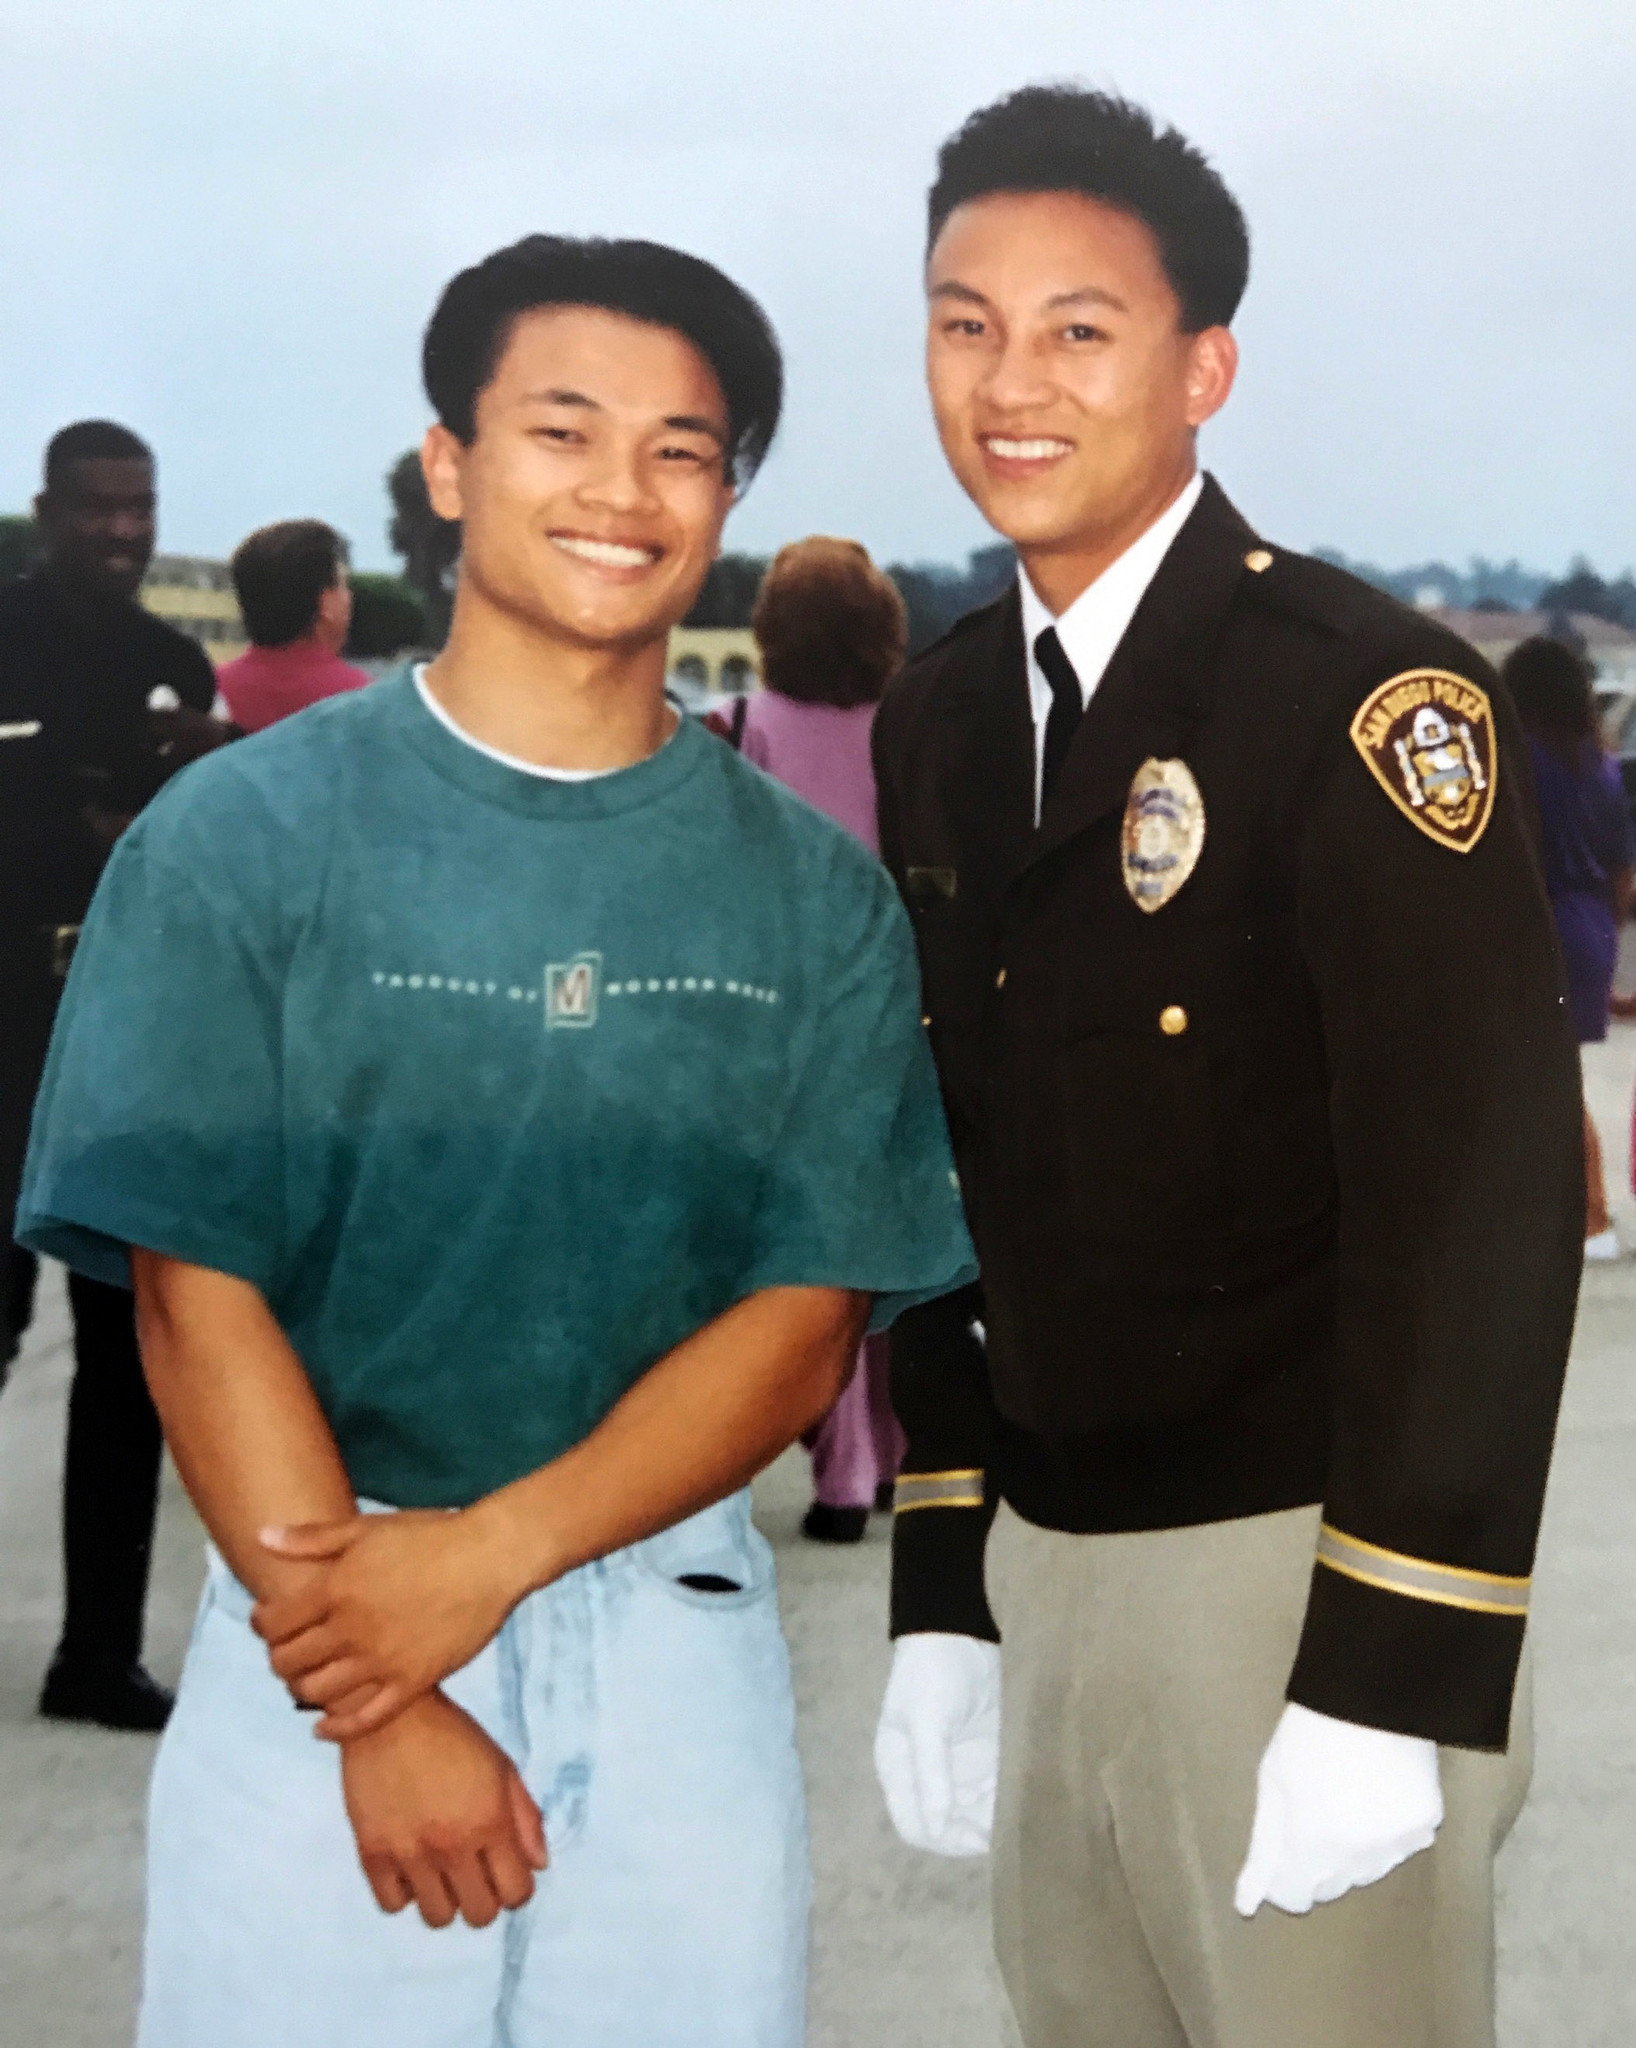 Timothy Vu, right, pictured with his brother, Tom, after graduating from the police academy in San Diego in 1993 at age 23.